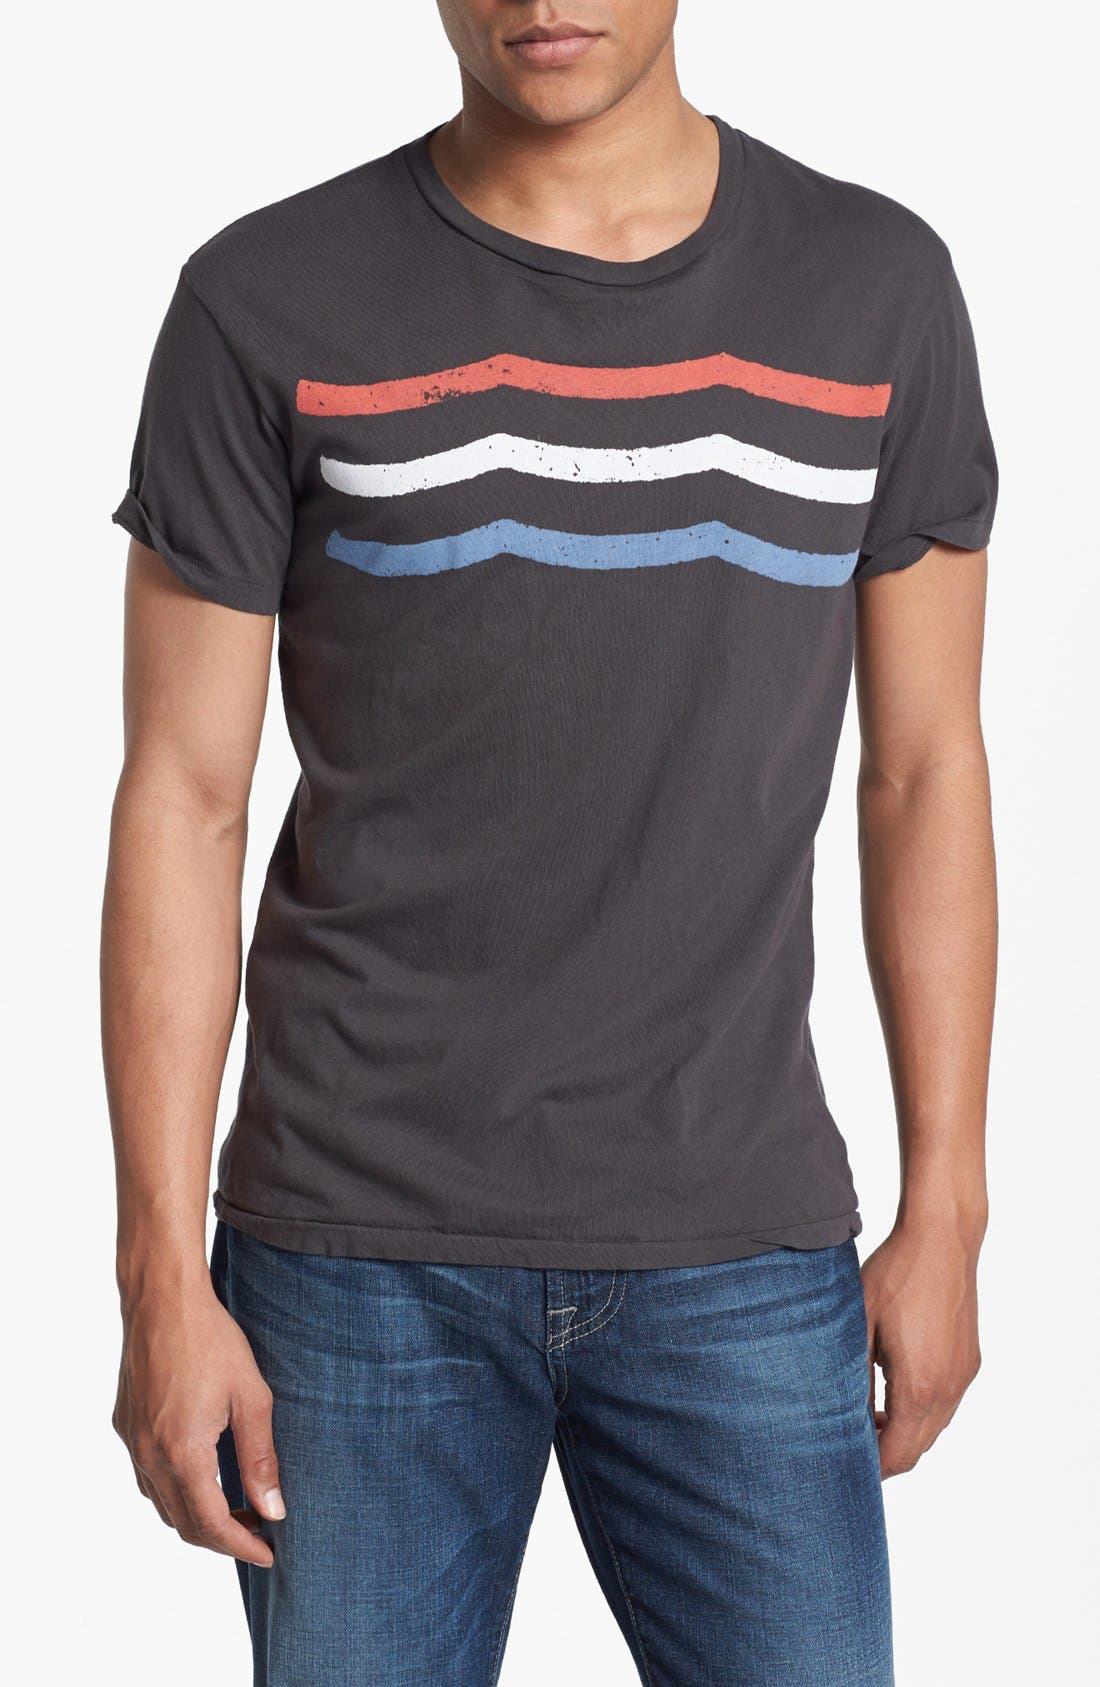 Alternate Image 1 Selected - Sol Angeles 'American Waves' T-Shirt